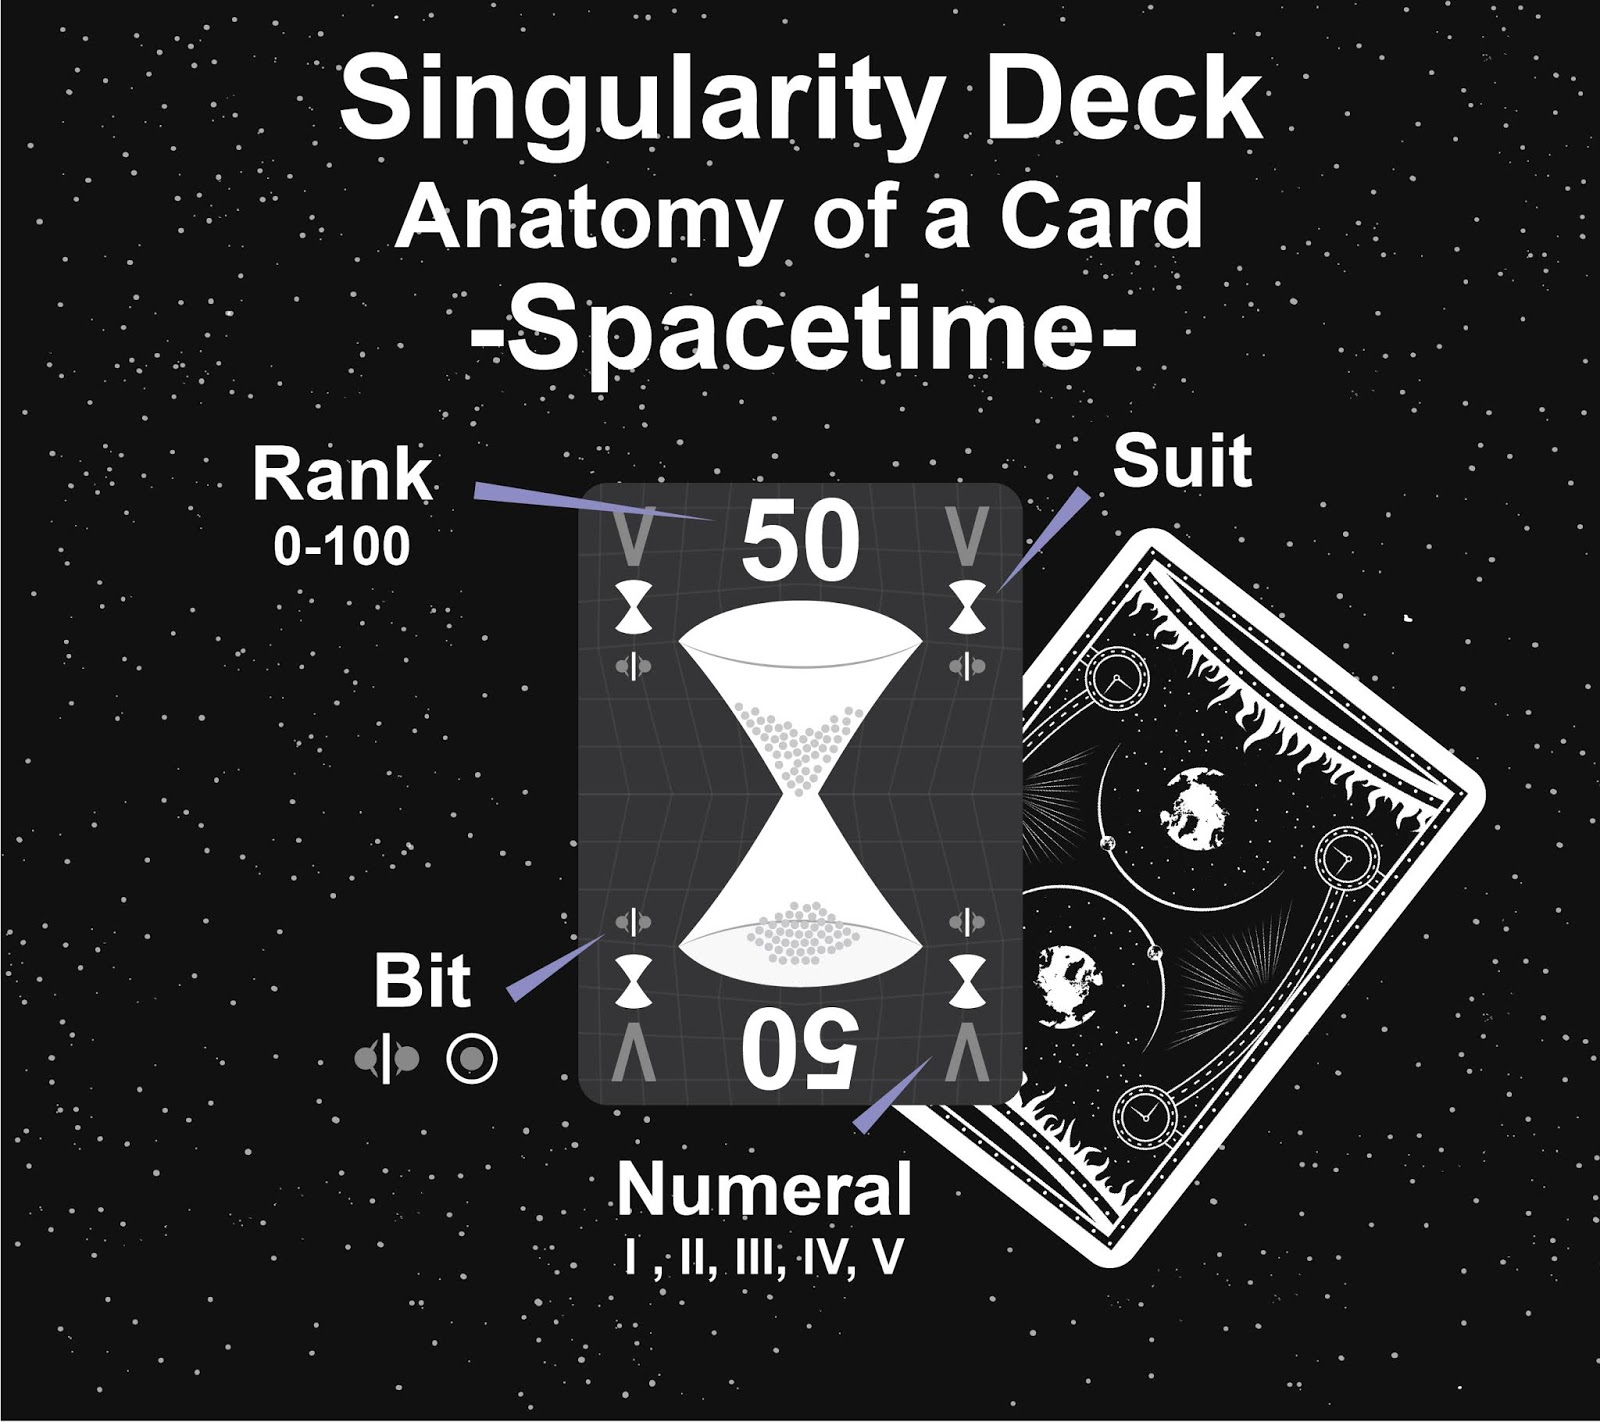 The Singularity Deck - Spacetime Card Anatomy